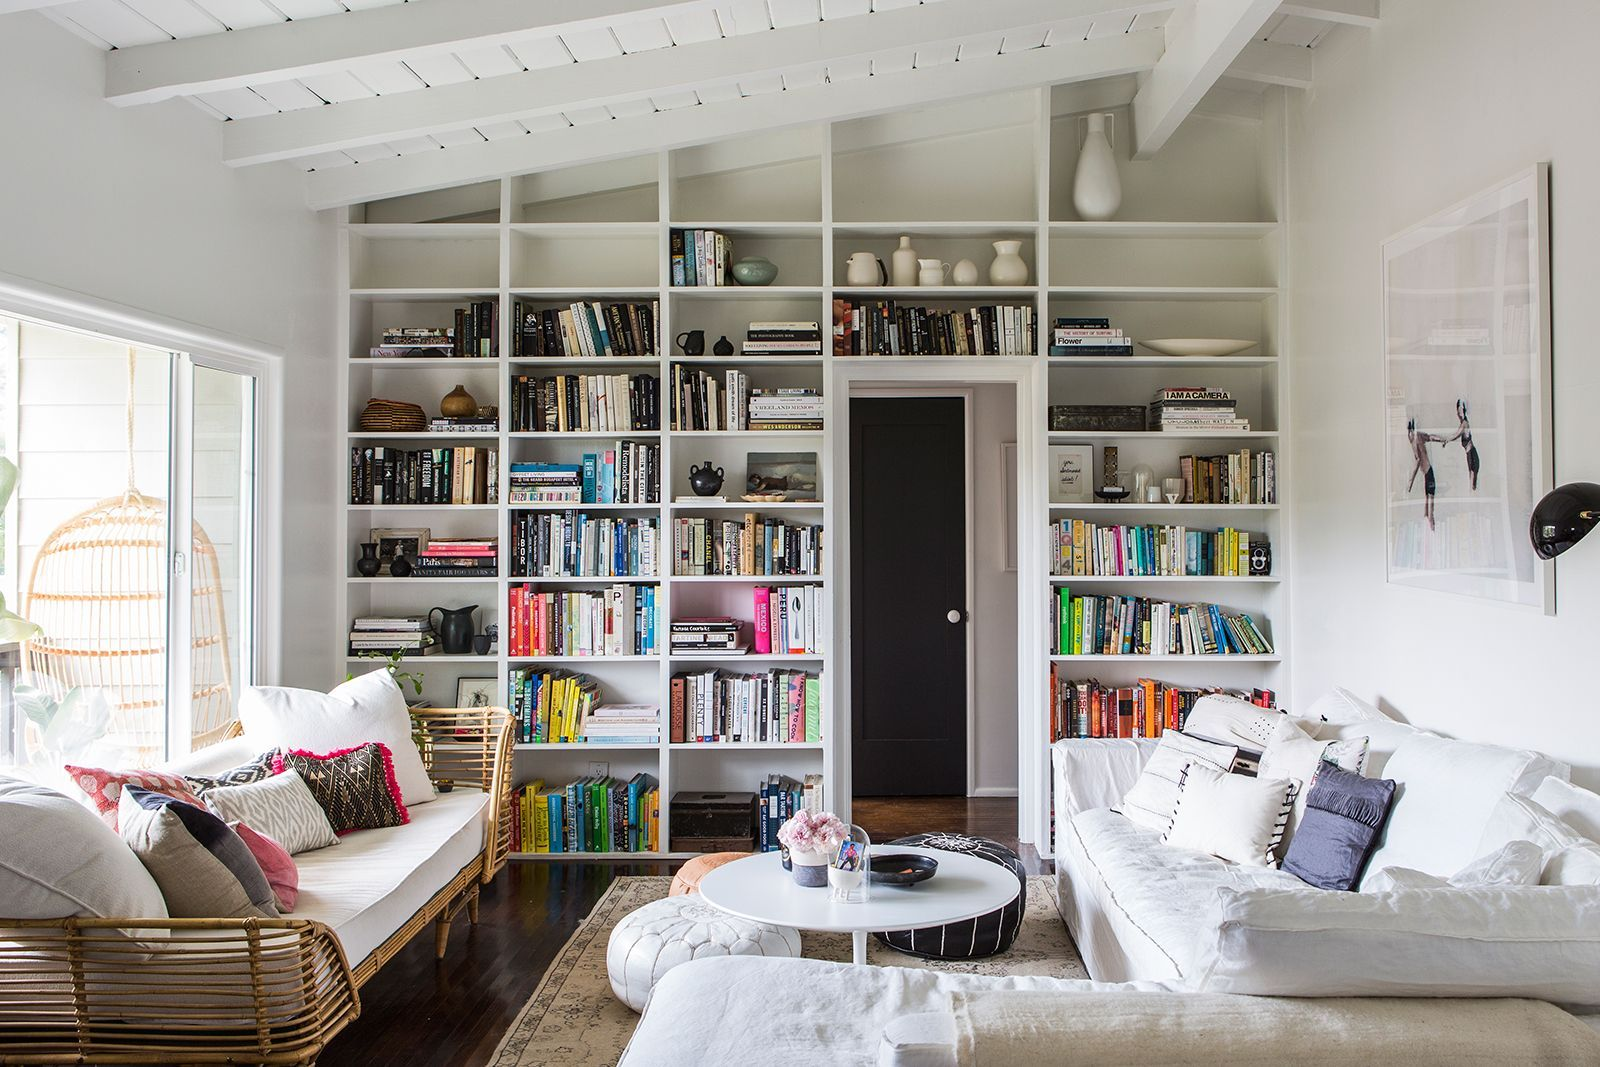 """This Blogger's Brand-New L.A. Home Is Impossibly Dreamy #refinery29  http://www.refinery29.com/2015/09/94026/sf-girl-by-bay-blog-home-tour#slide-1  In an ingenius move, Smith decided to fashion a completely custom built-in bookcase for this previously empty wall. """"The room looked kind of boring without it,"""" she told us. """"My carpenter, Colin Hughes, and I talked about what kind of design it would be and how it would go flush with the ceiling. He built it up to tha..."""